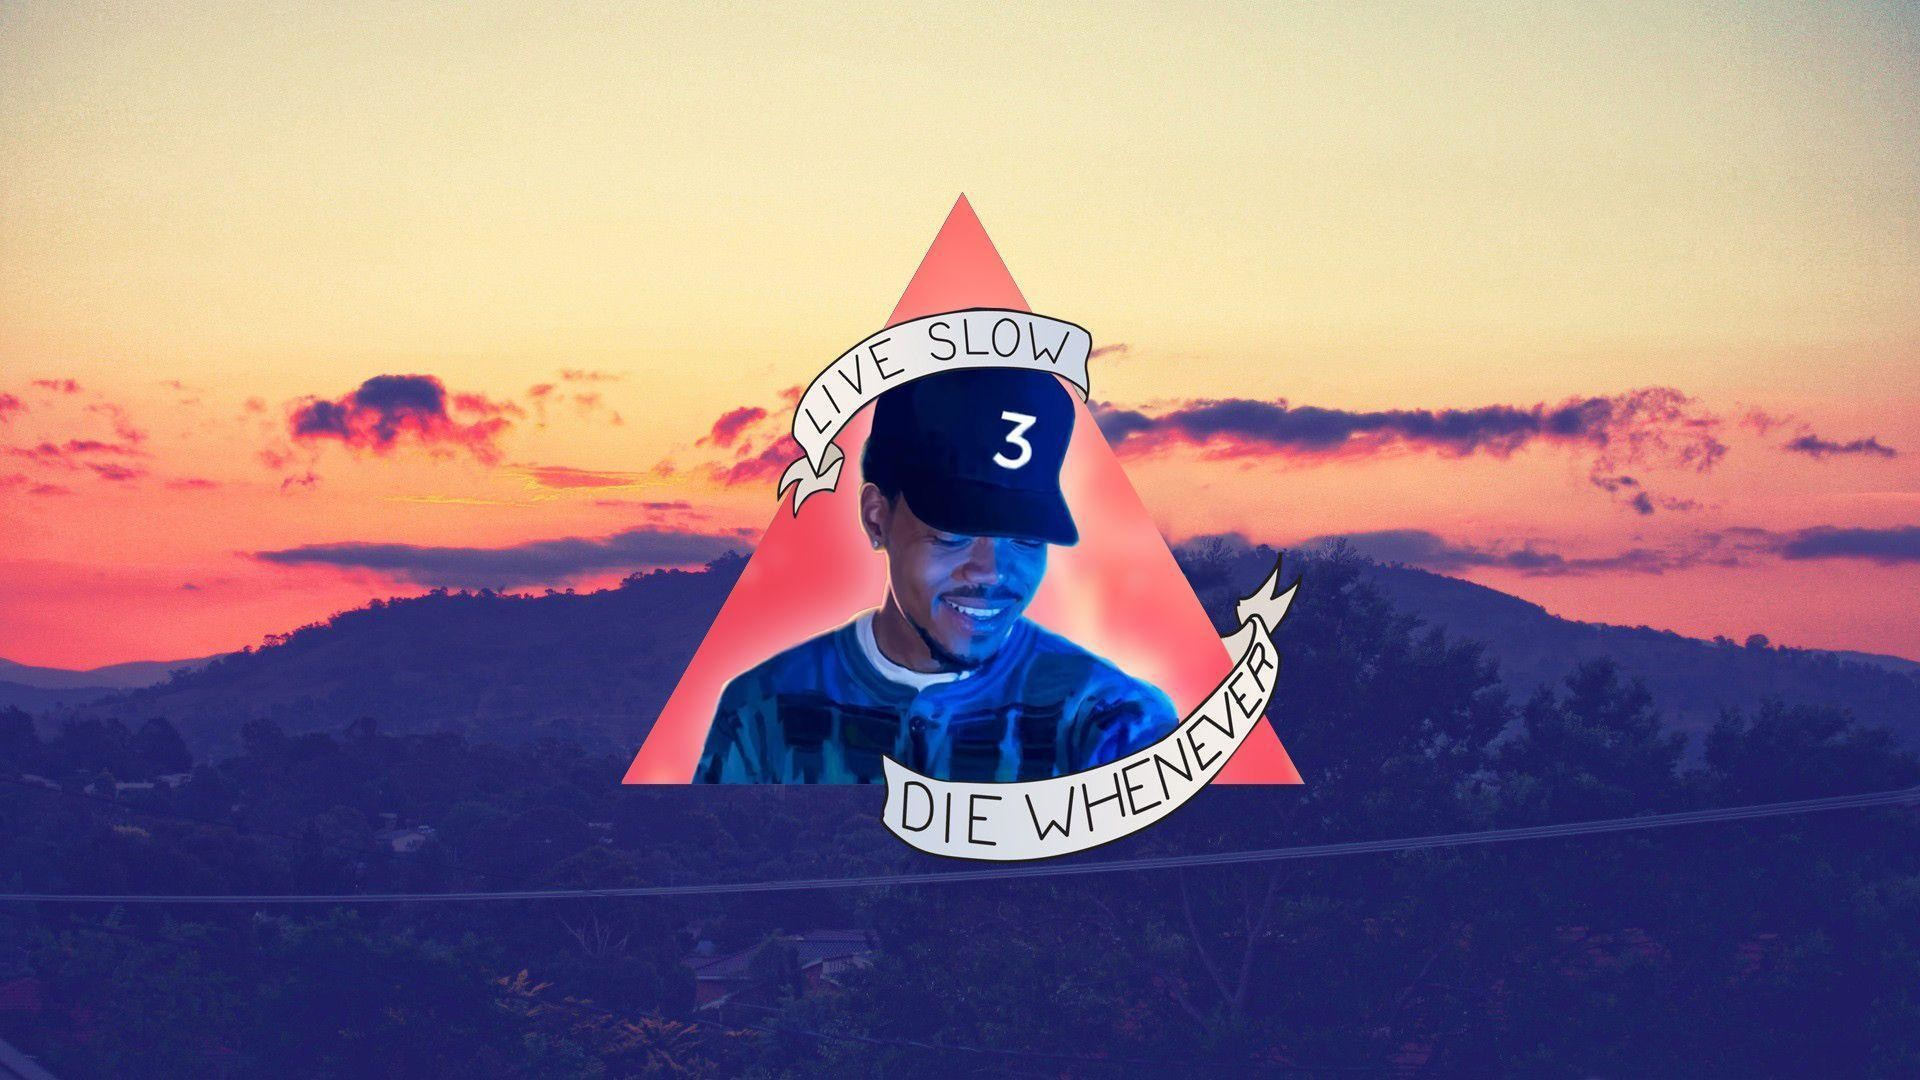 Chance coloring book free download - 1920x1080 Chance The Rapper Wallpaper Cool Wallpaper Box